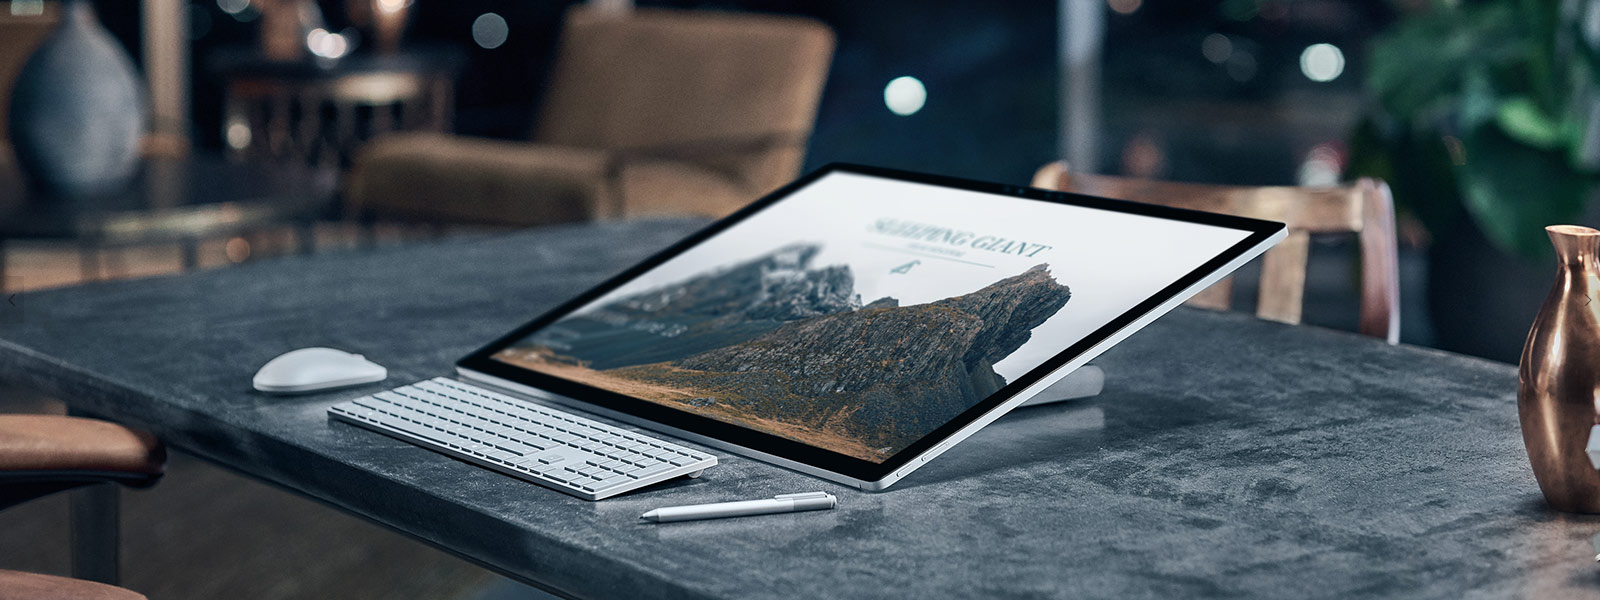 Surface Studioin Studio Mode with Surface Pen and mouse.